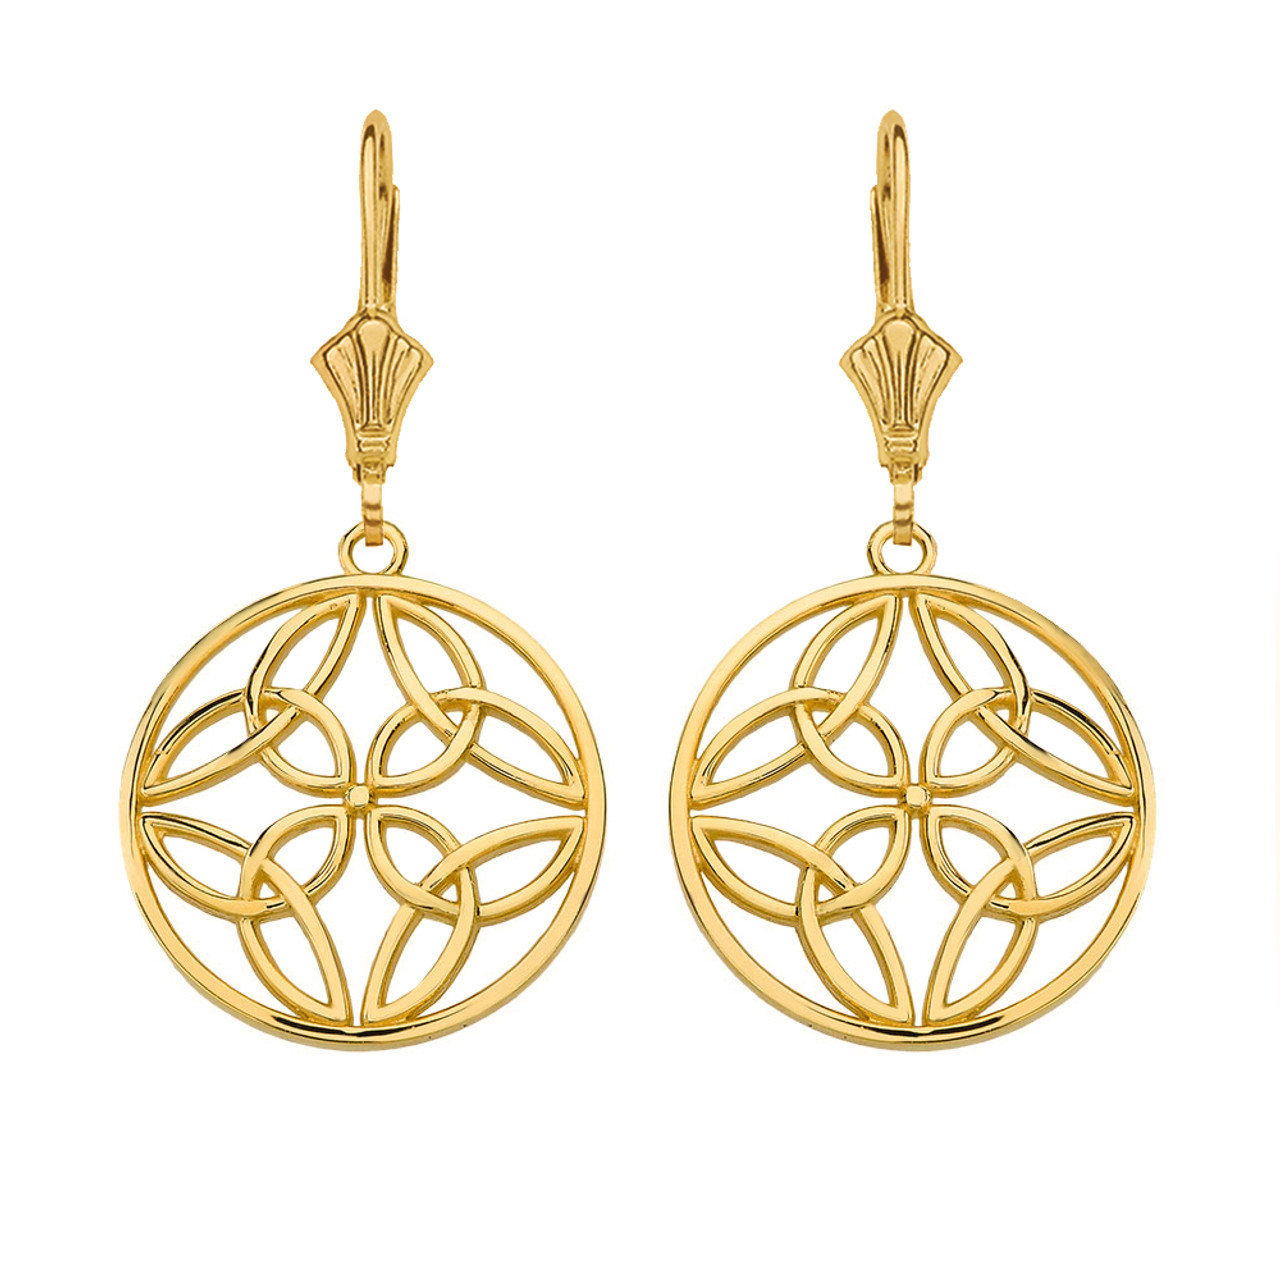 drop mirnesa jewellery earrings gold oliver bonas circular multi circle